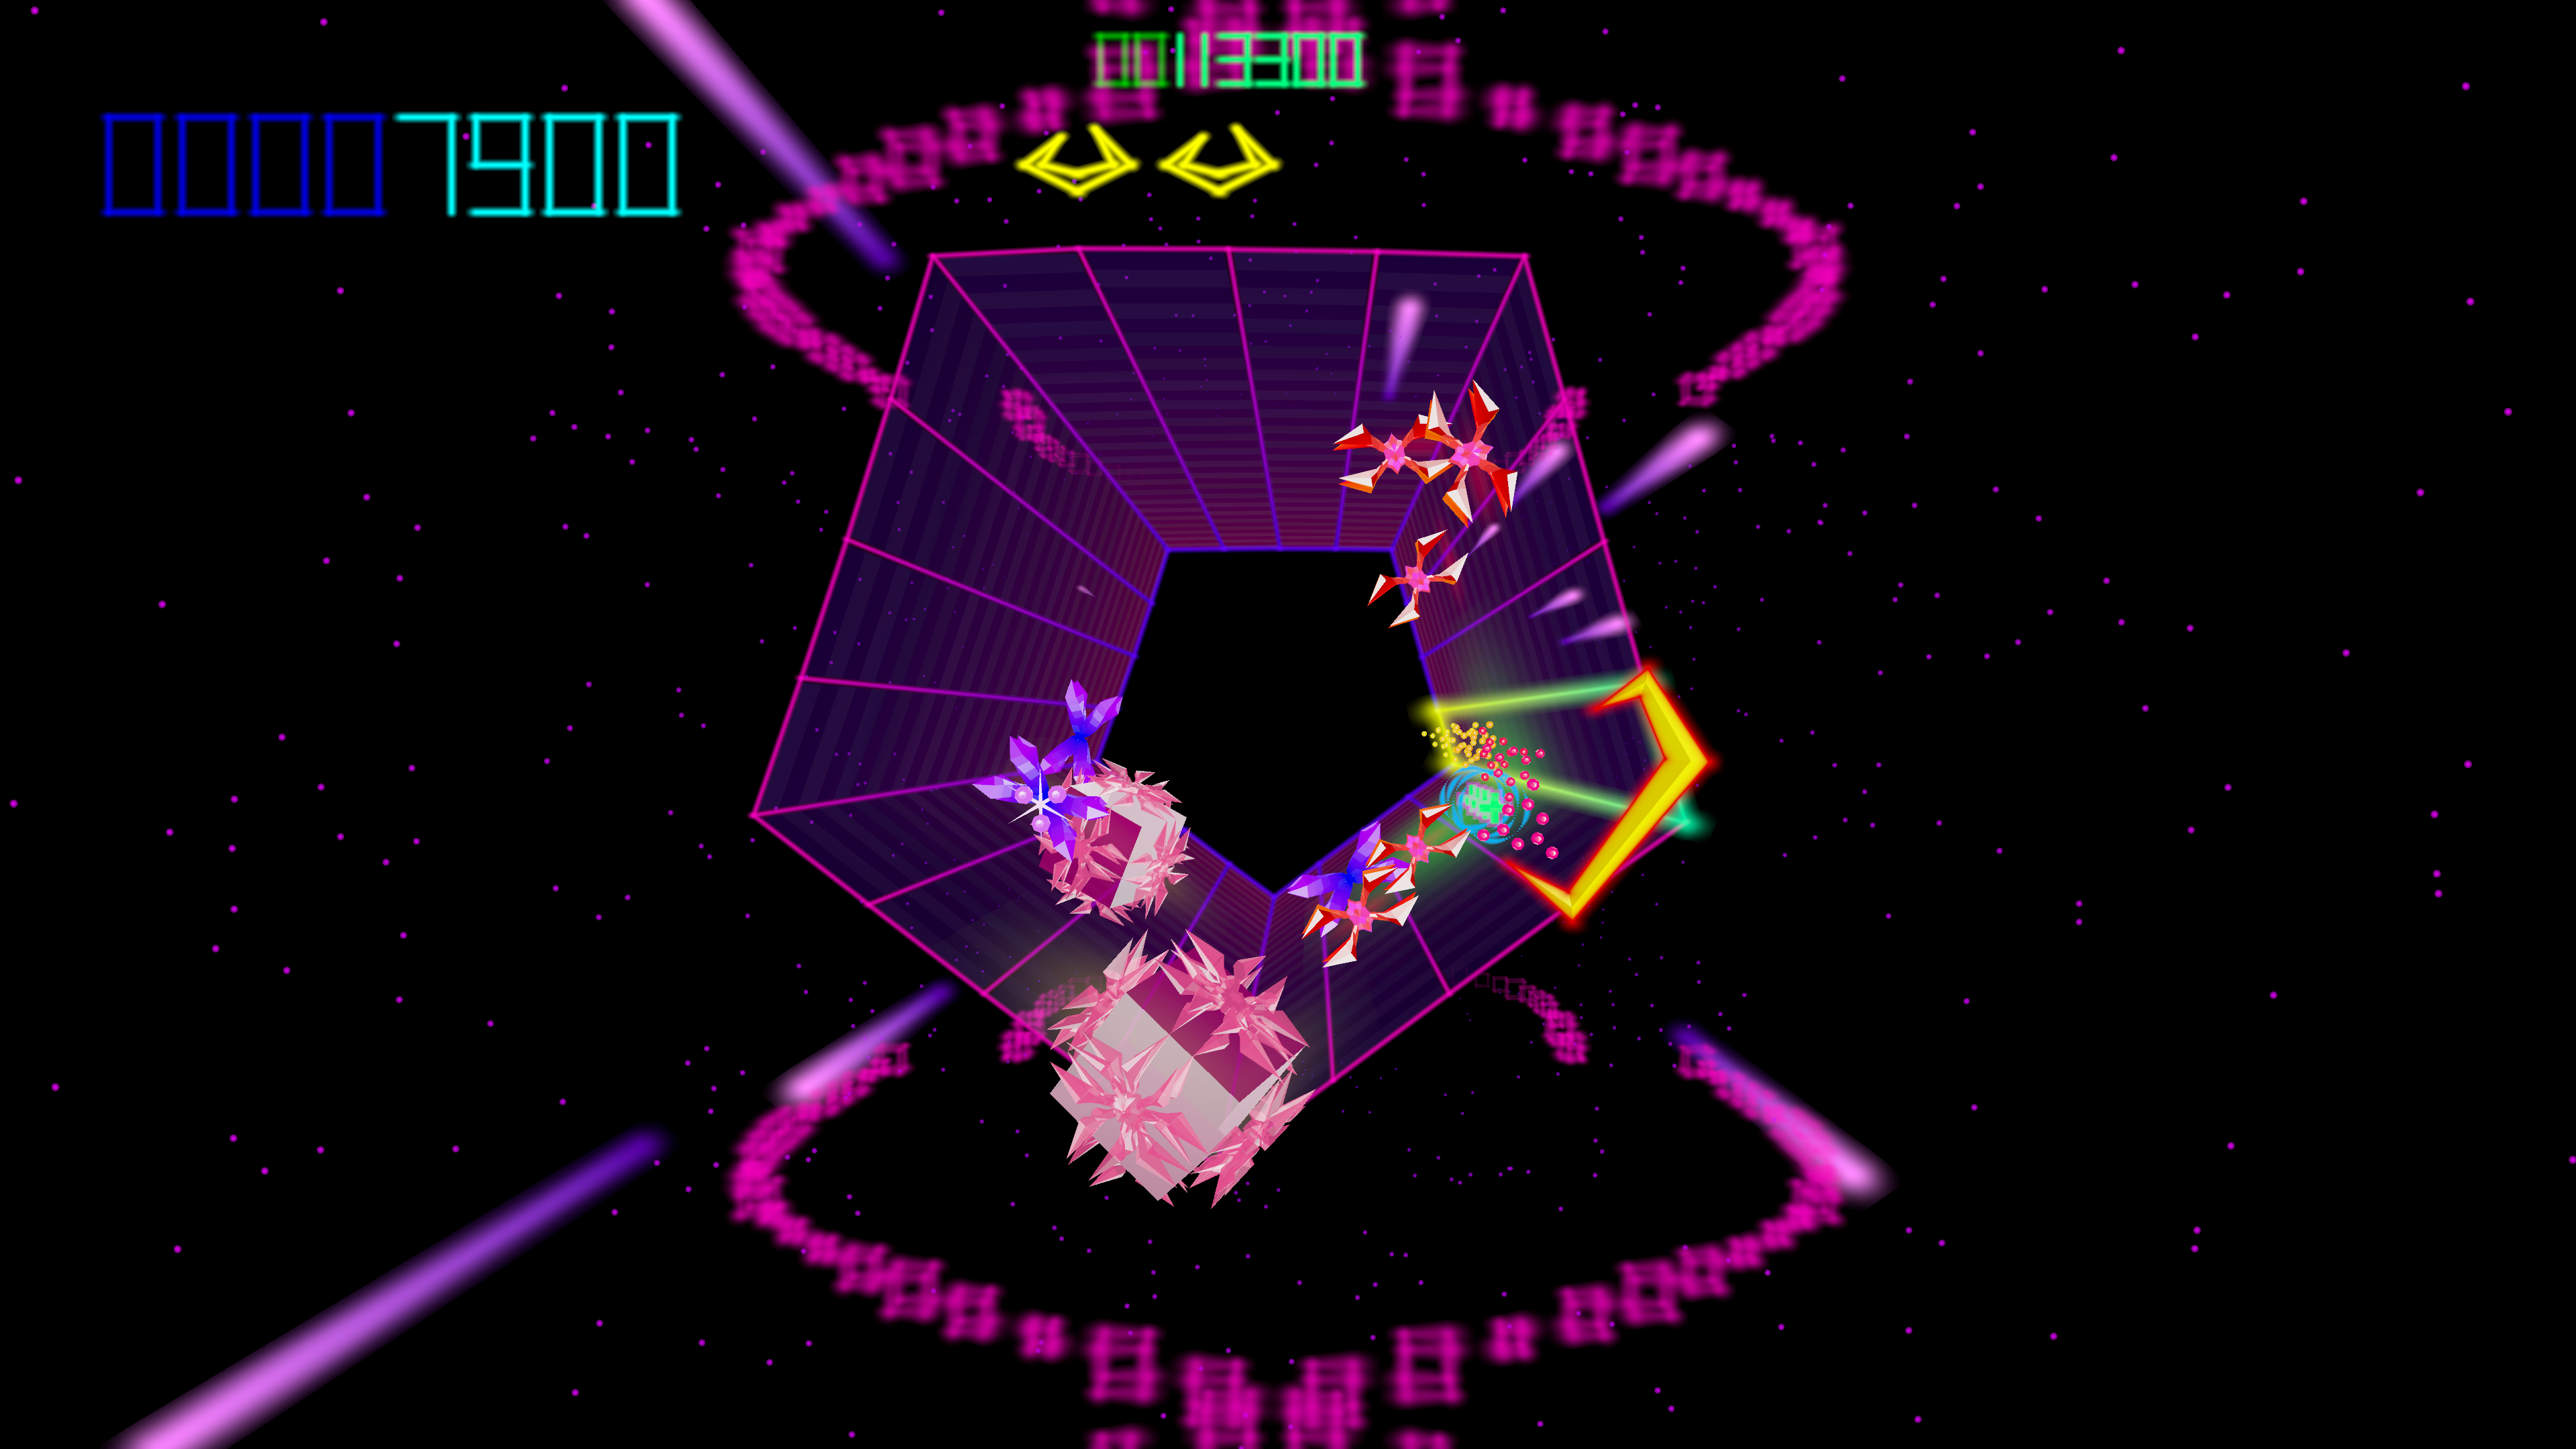 Screenshot 2 - Tempest 4000